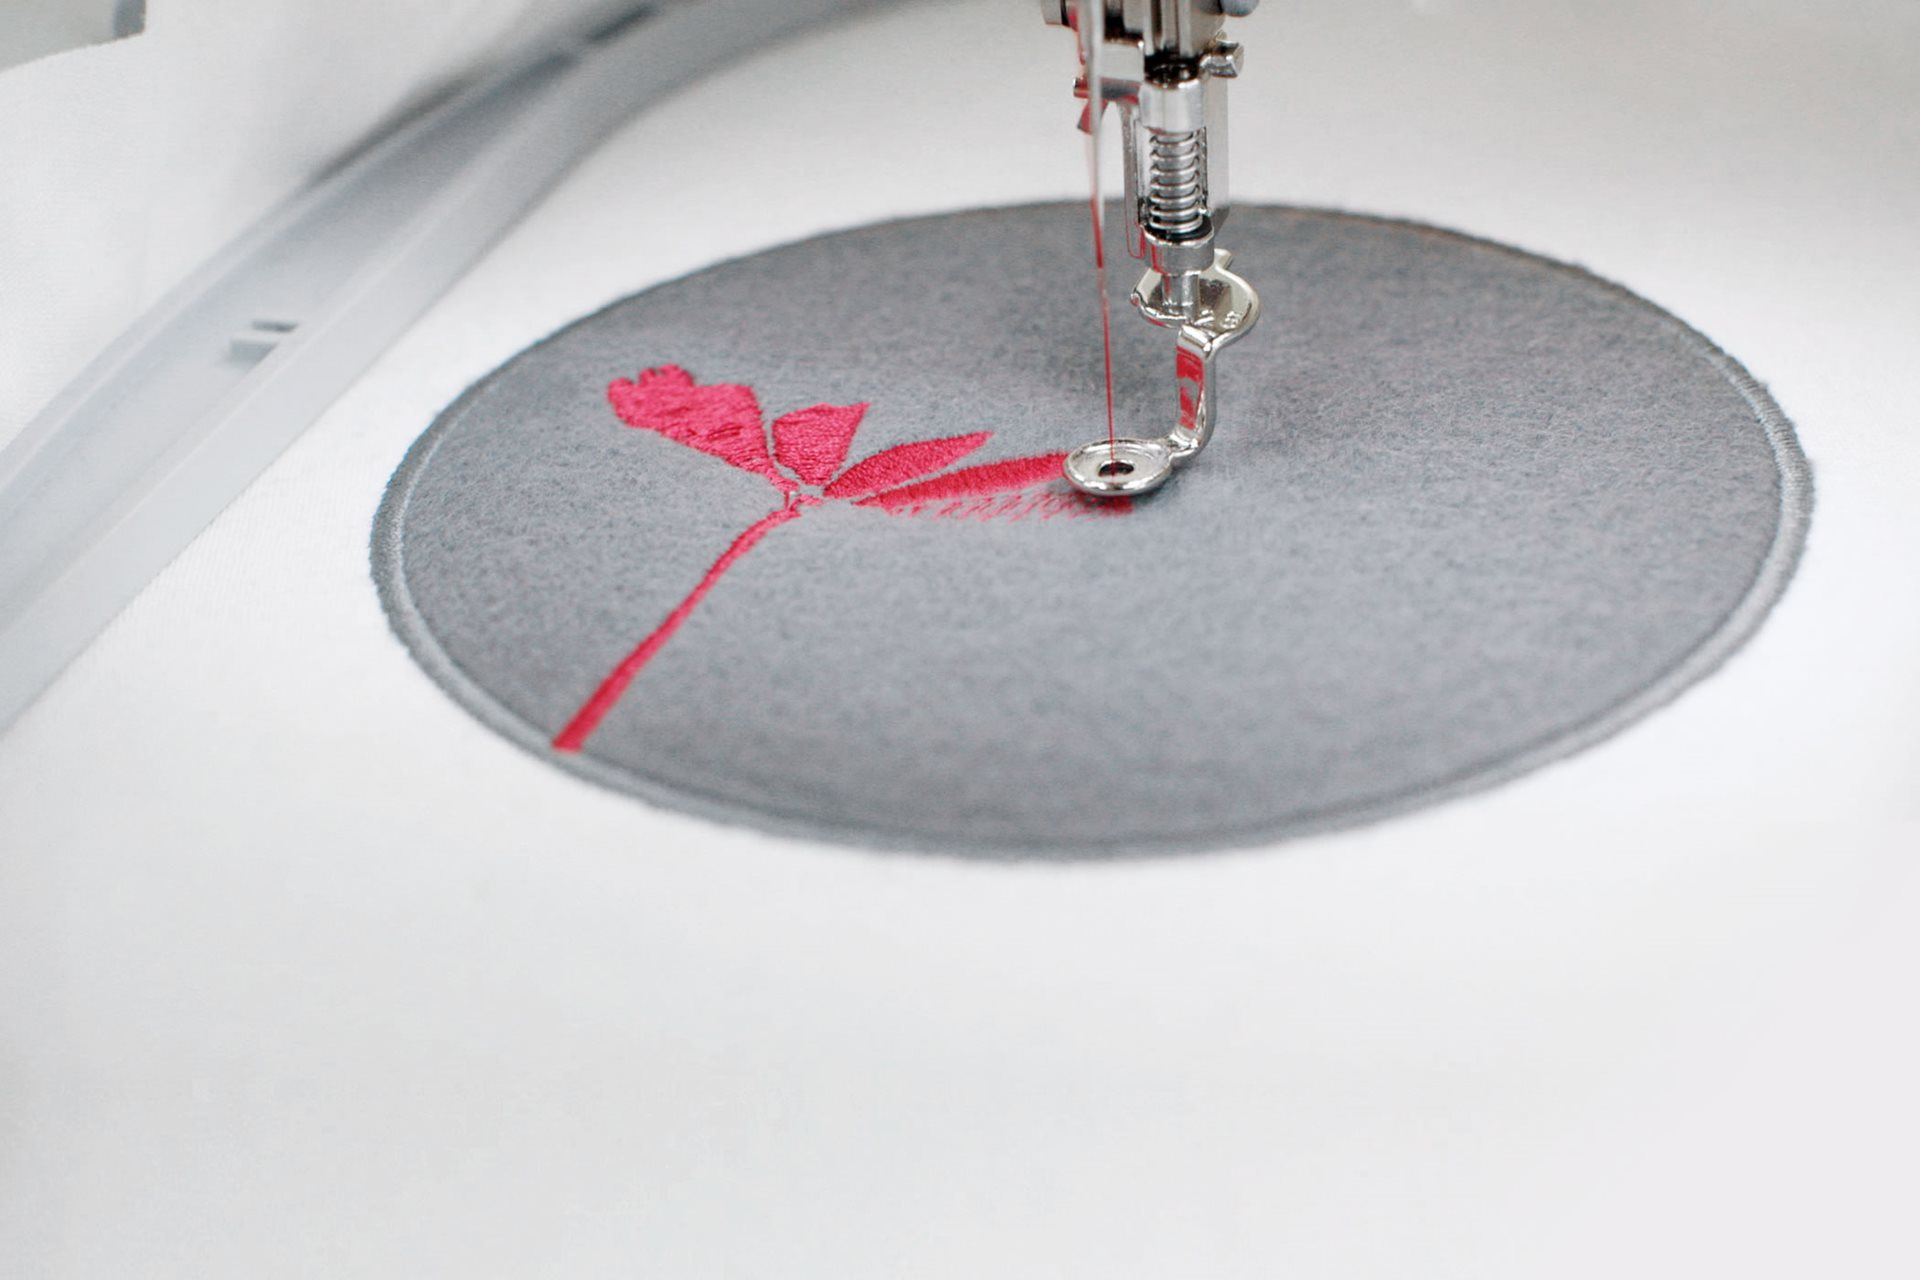 Embroidery software lessons